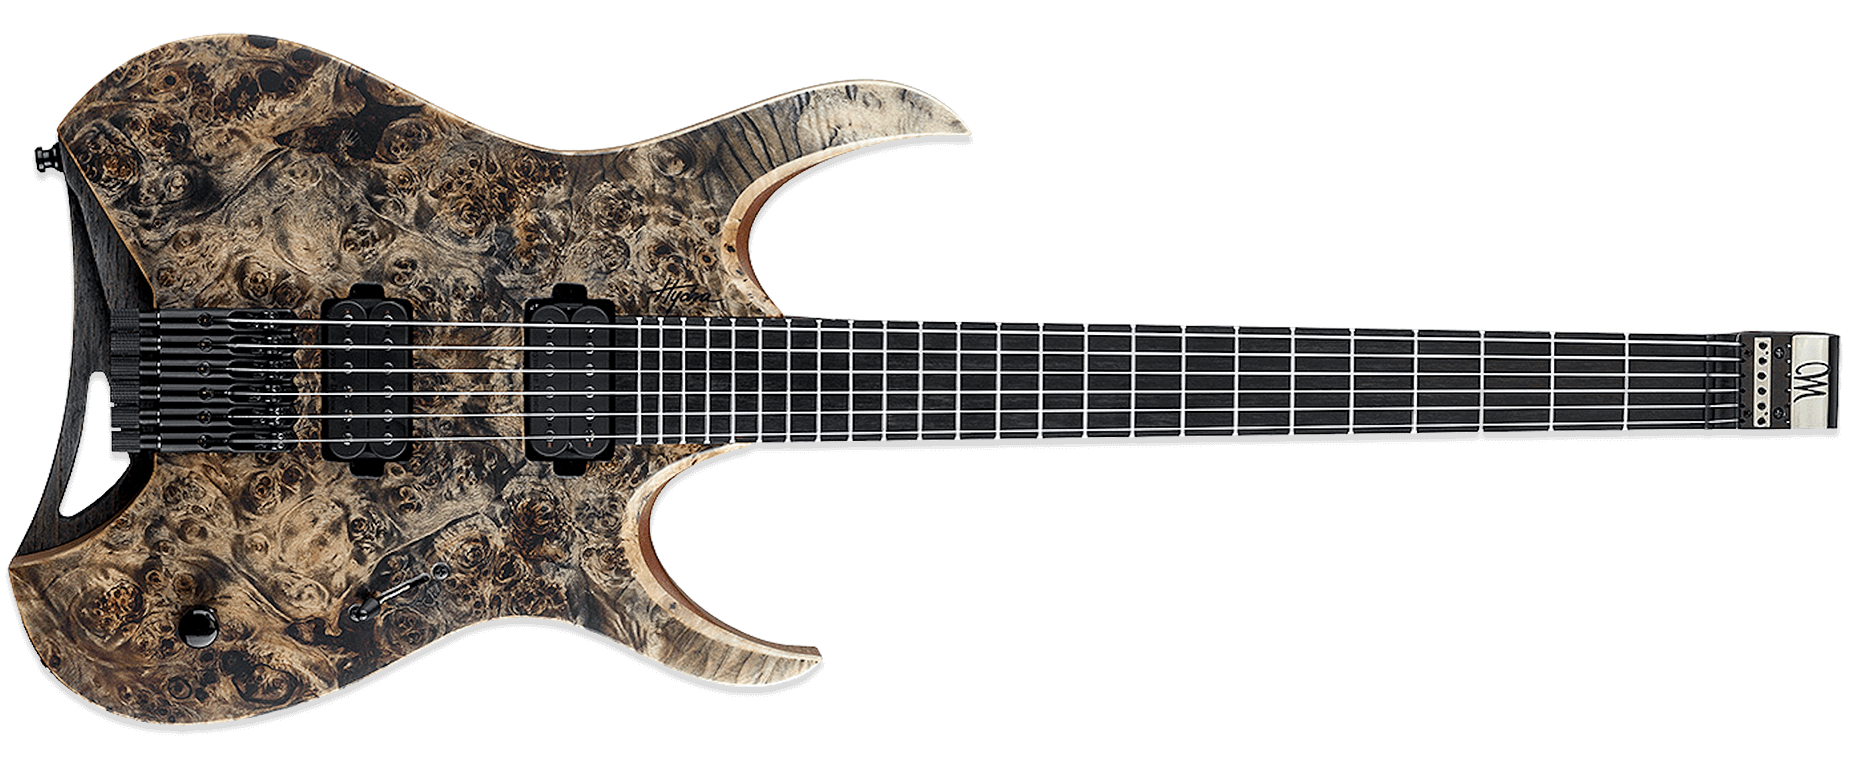 Mayones Hydra Elite 6 Transparent Graphite